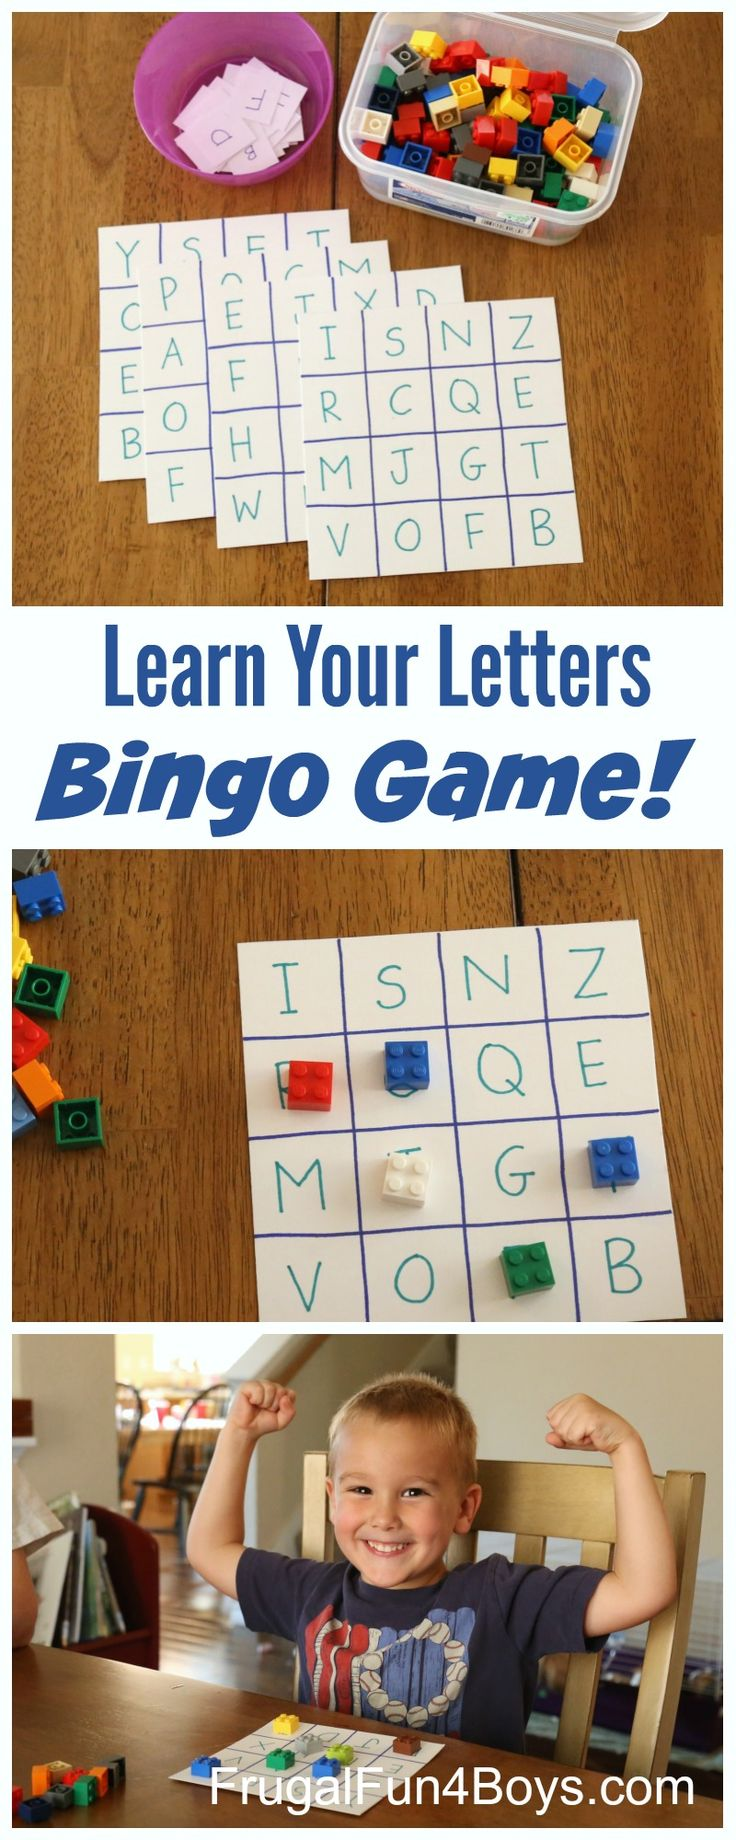 Here's another fun alphabet activity for kids – alphabet bingo! This game is simple to make with materials you have on hand, and my preschooler loved it. I made